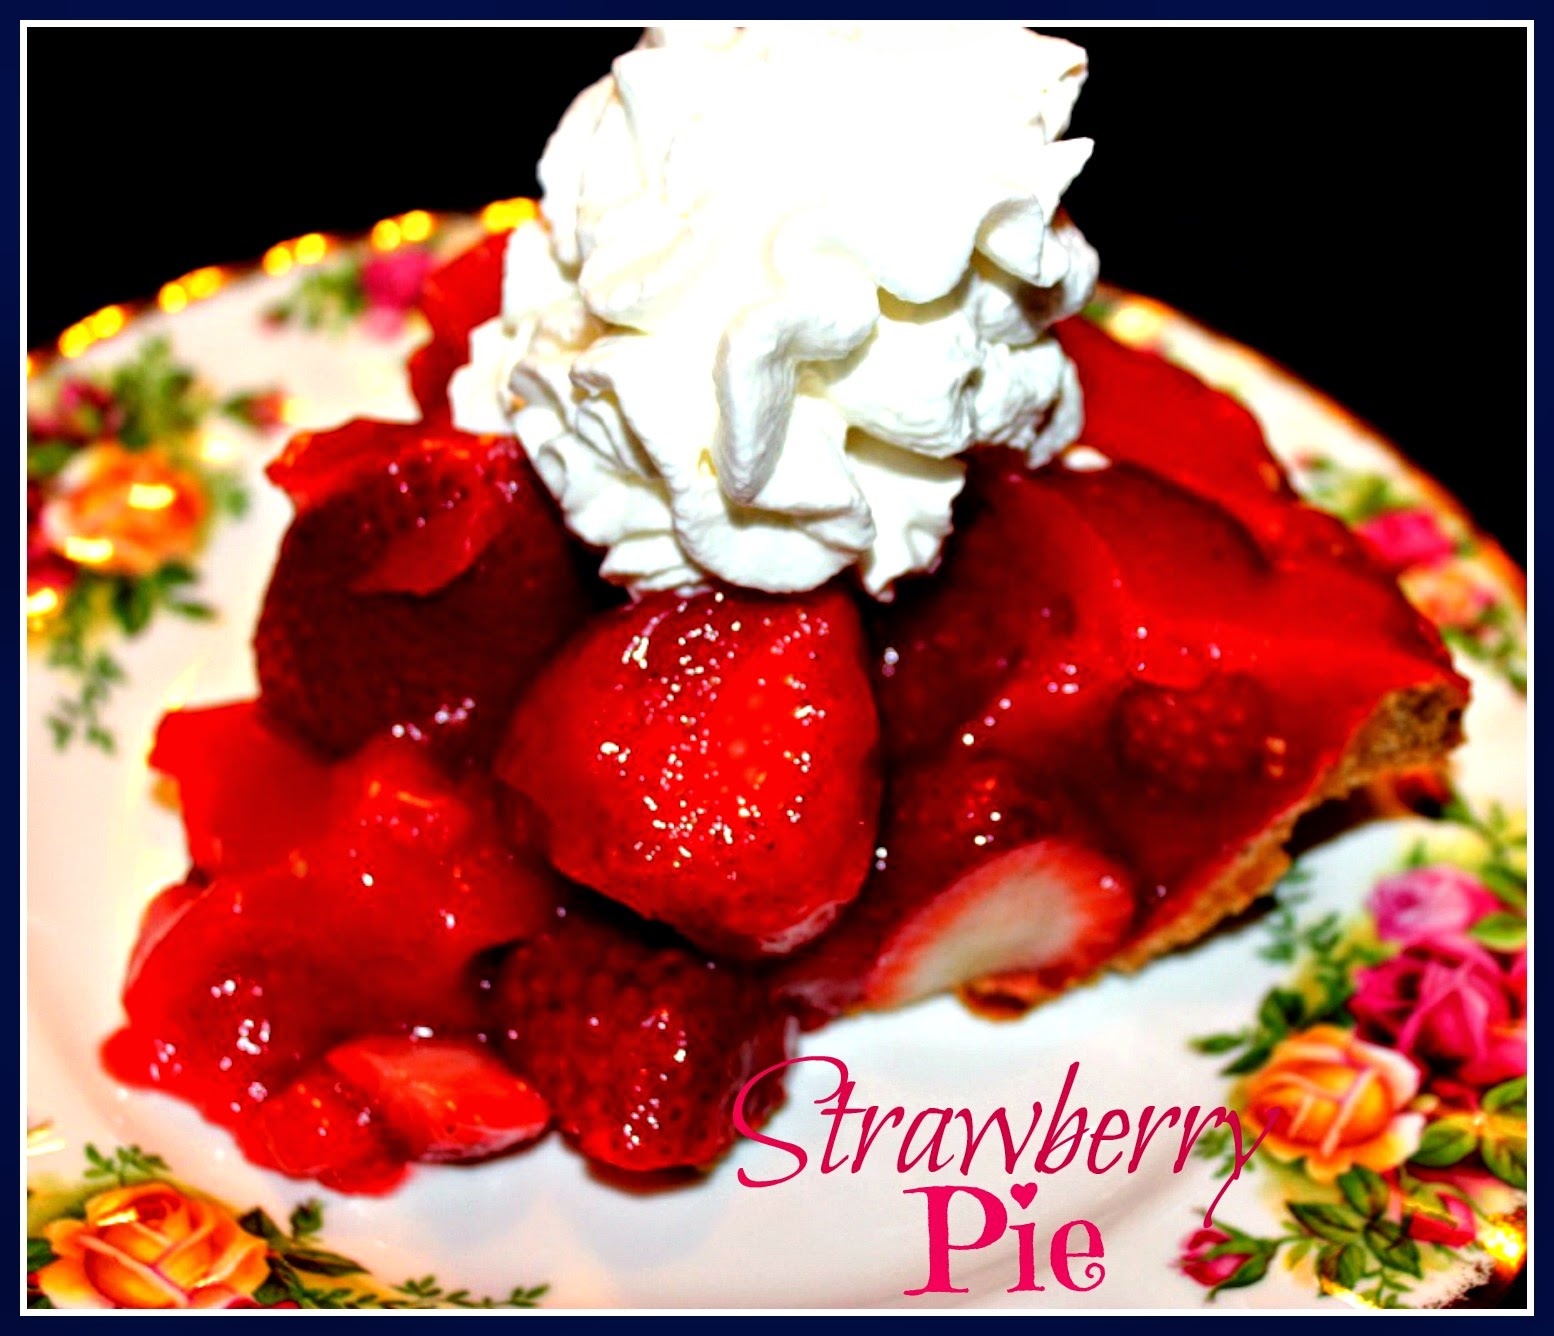 fresh strawberry pie fresh strawberry pie iii fresh strawberry pie ...